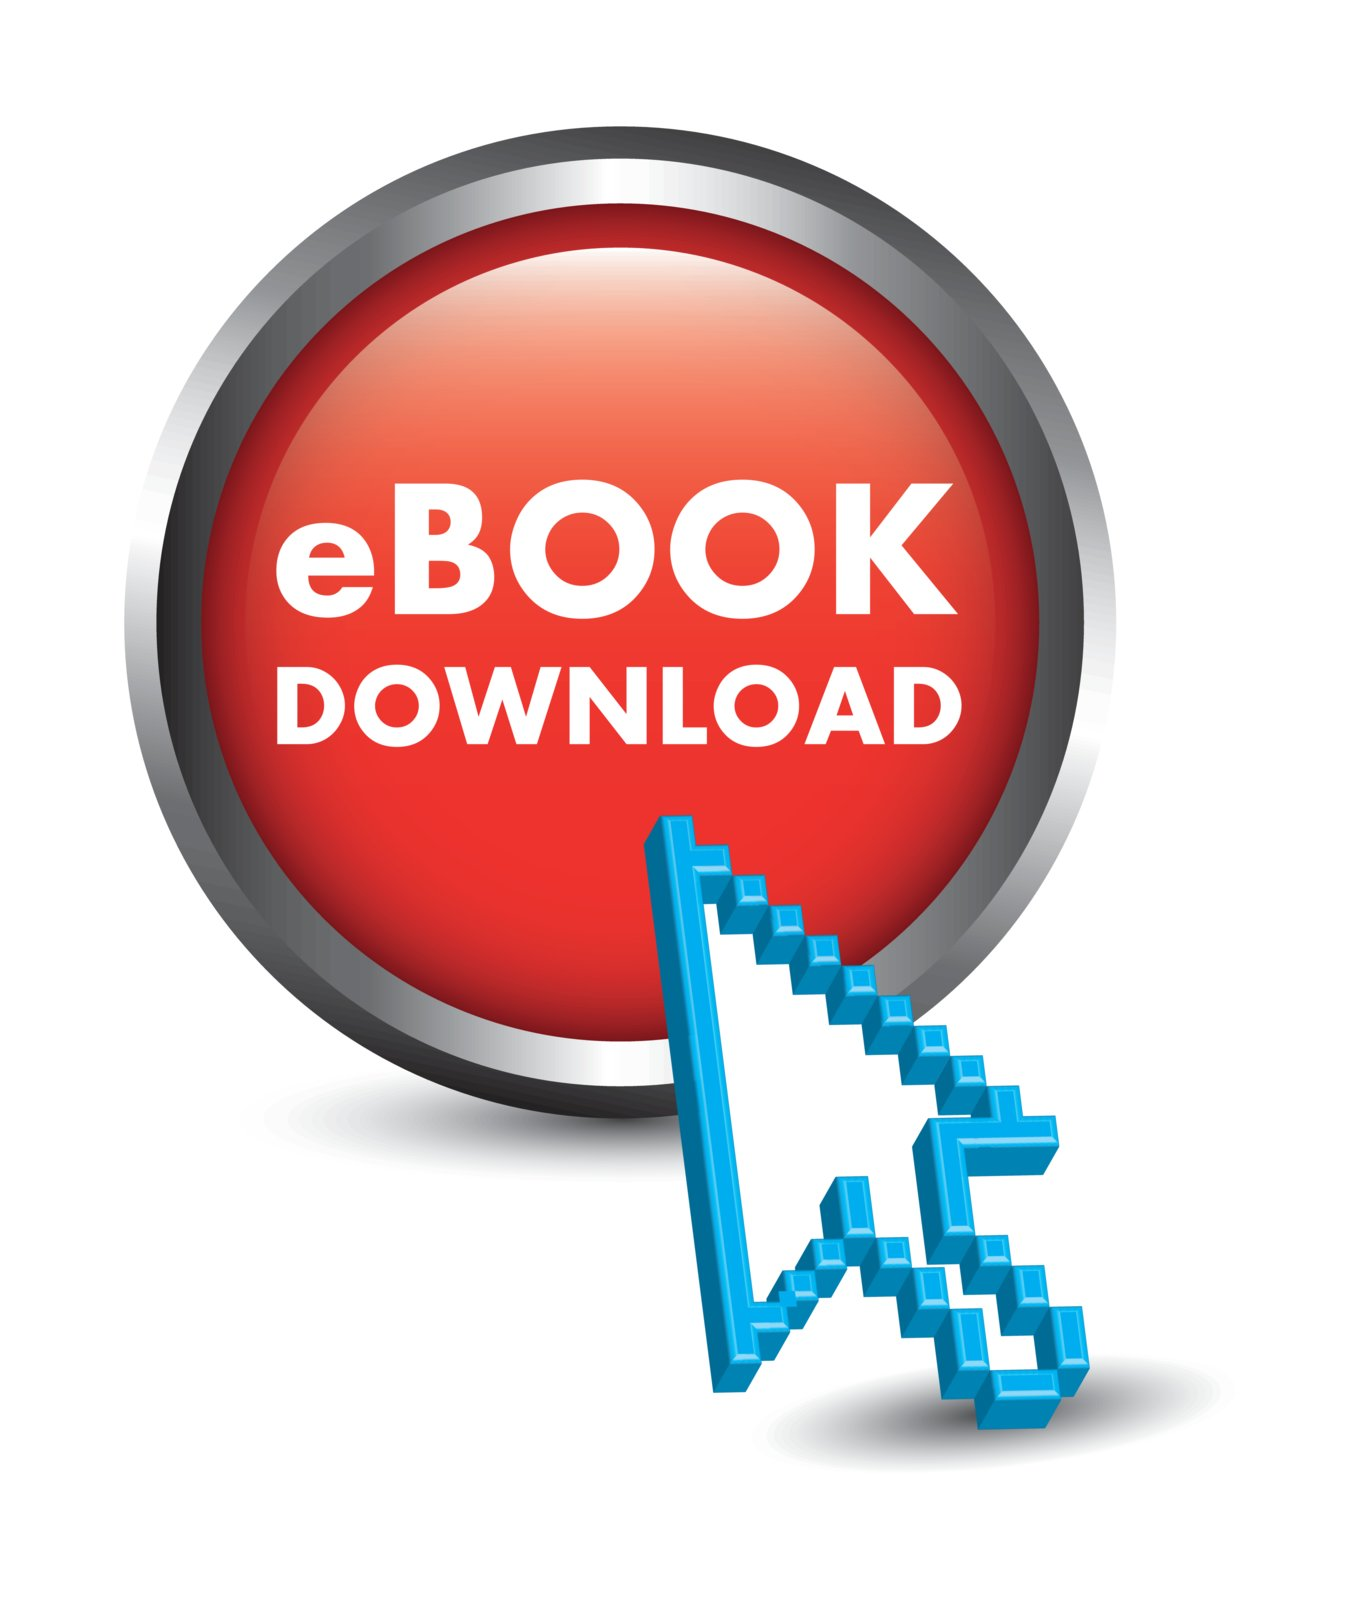 download an ebook online